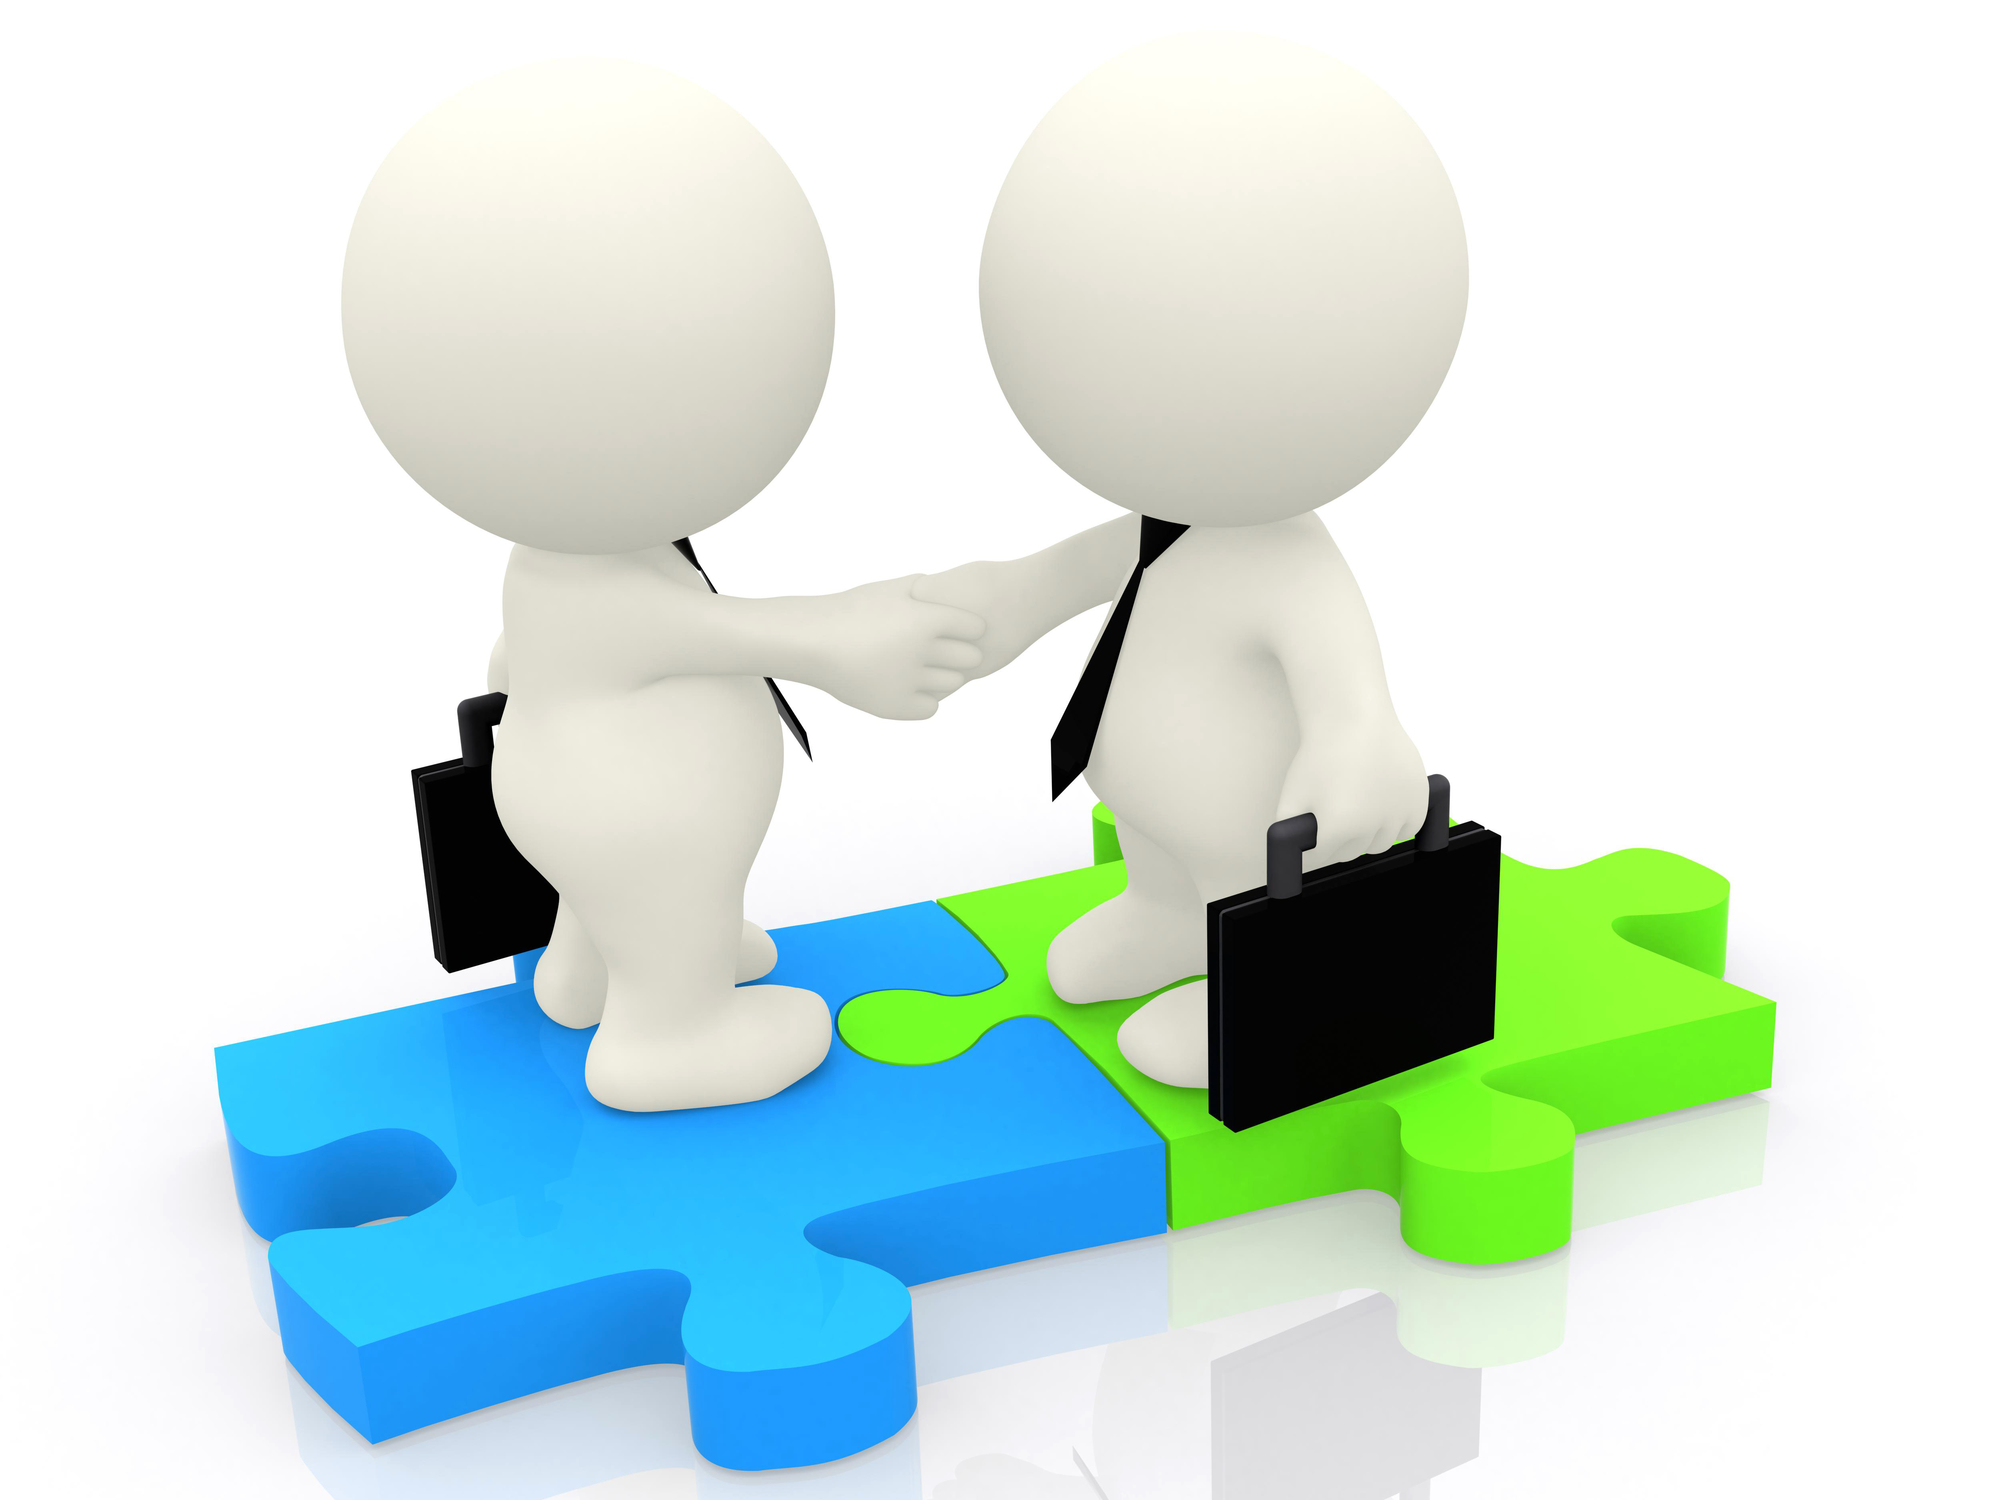 Business clipart partnership. Forming a strategic alliance